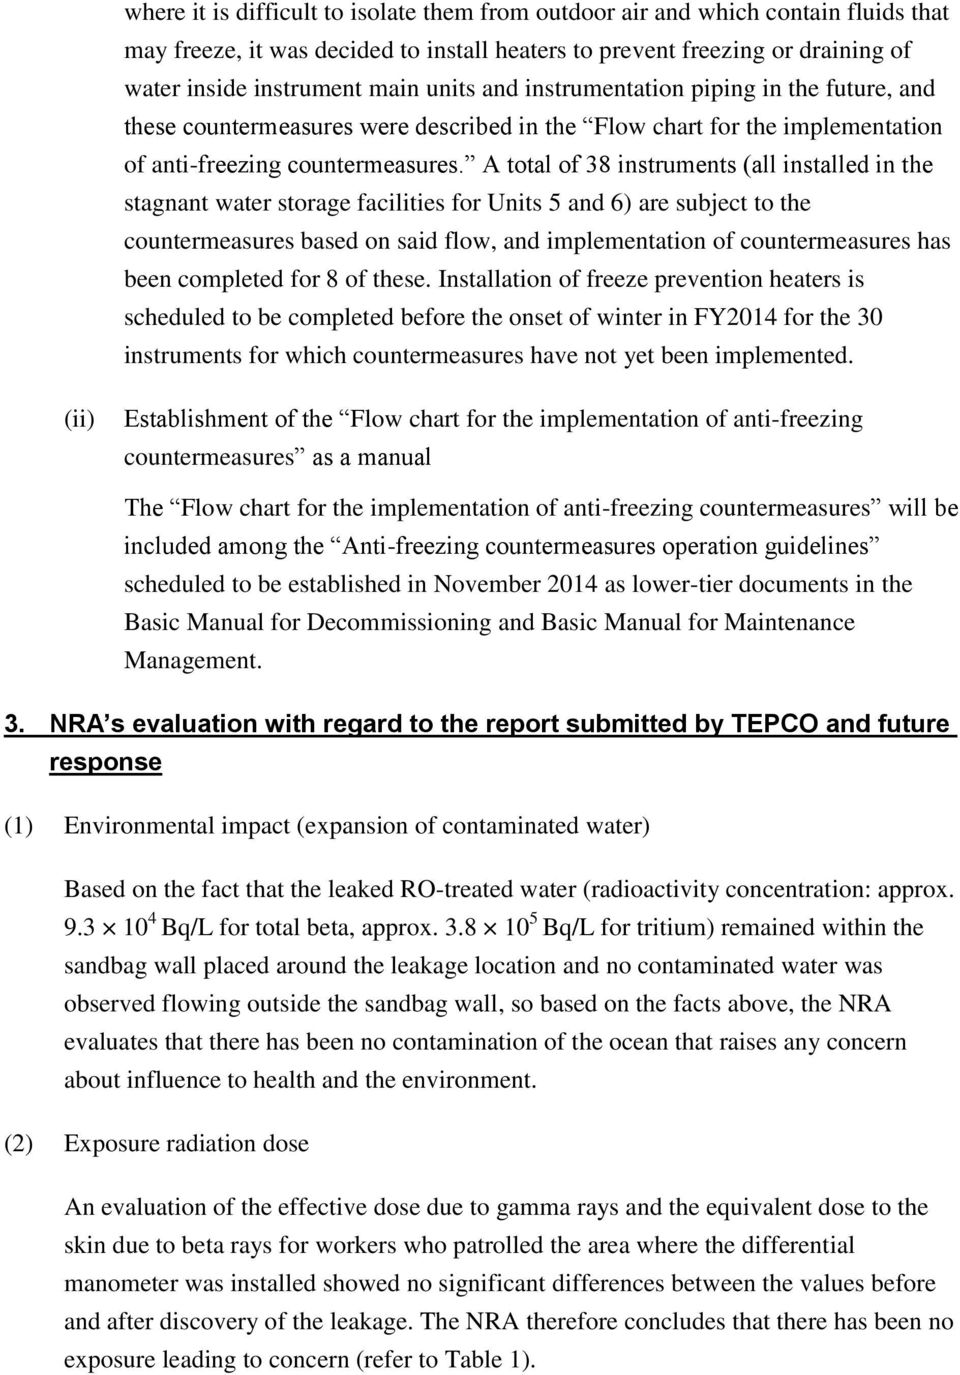 A total of 38 instruments (all installed in the stagnant water storage facilities for Units 5 and 6) are subject to the countermeasures based on said flow, and implementation of countermeasures has